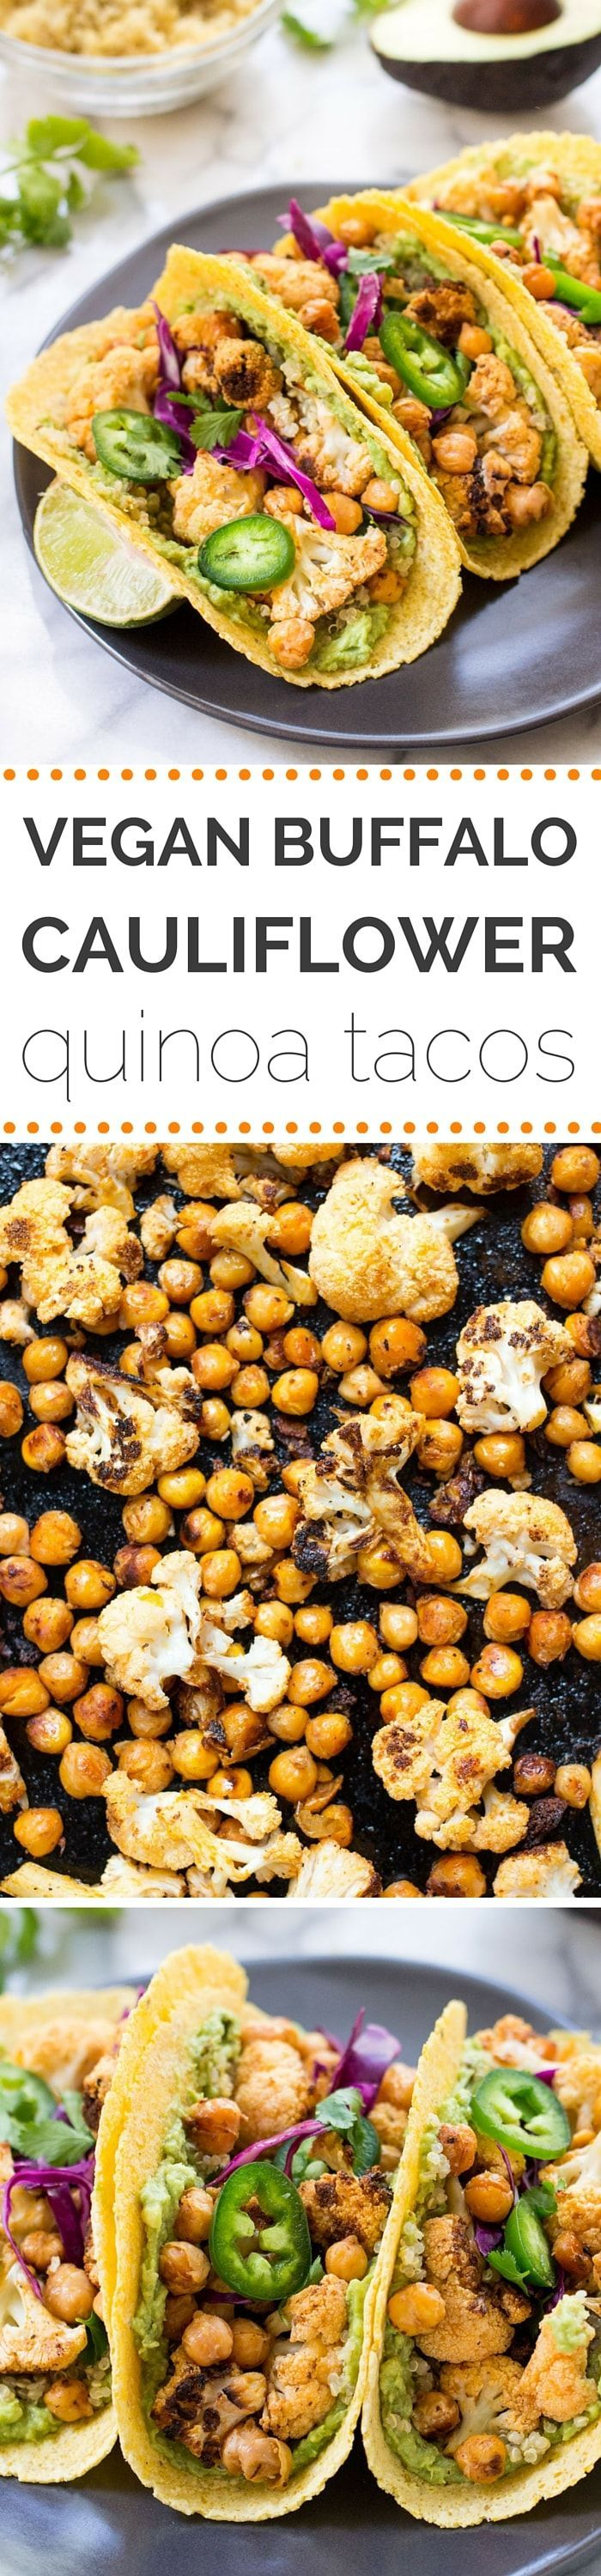 BUFFALO CAULIFLOWER + QUINOA TACOS -- a healthy meatless meal that is packed with nutrition and TONS of flavor!